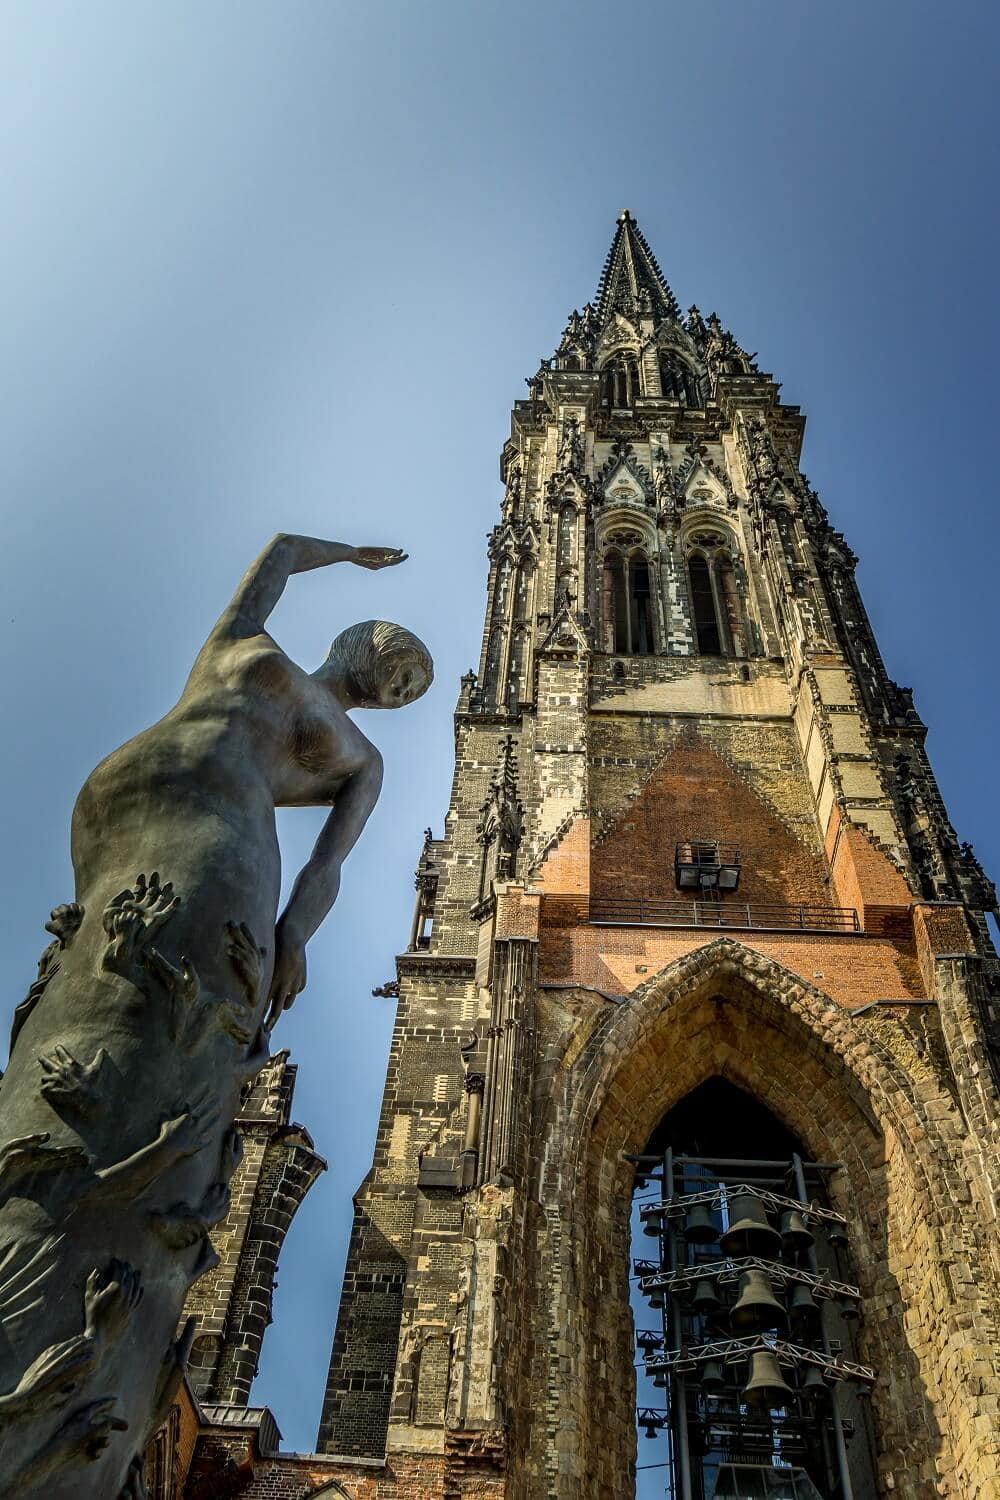 Sculpture below the tower of St. Nicholas's Church in Hamburg